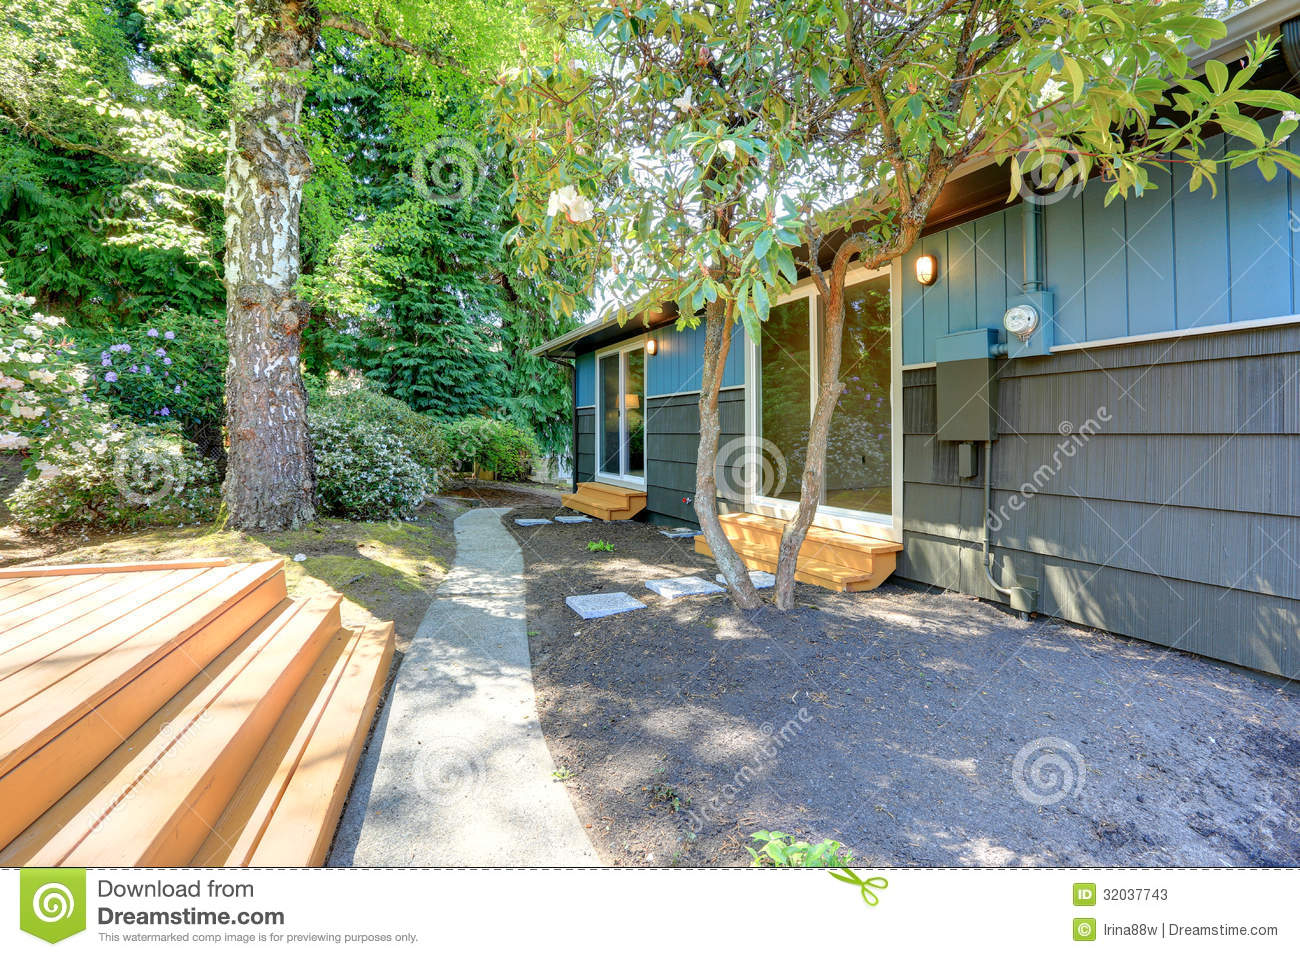 Small Blue House With Deck Of The Garden Studio And Birch Tree.